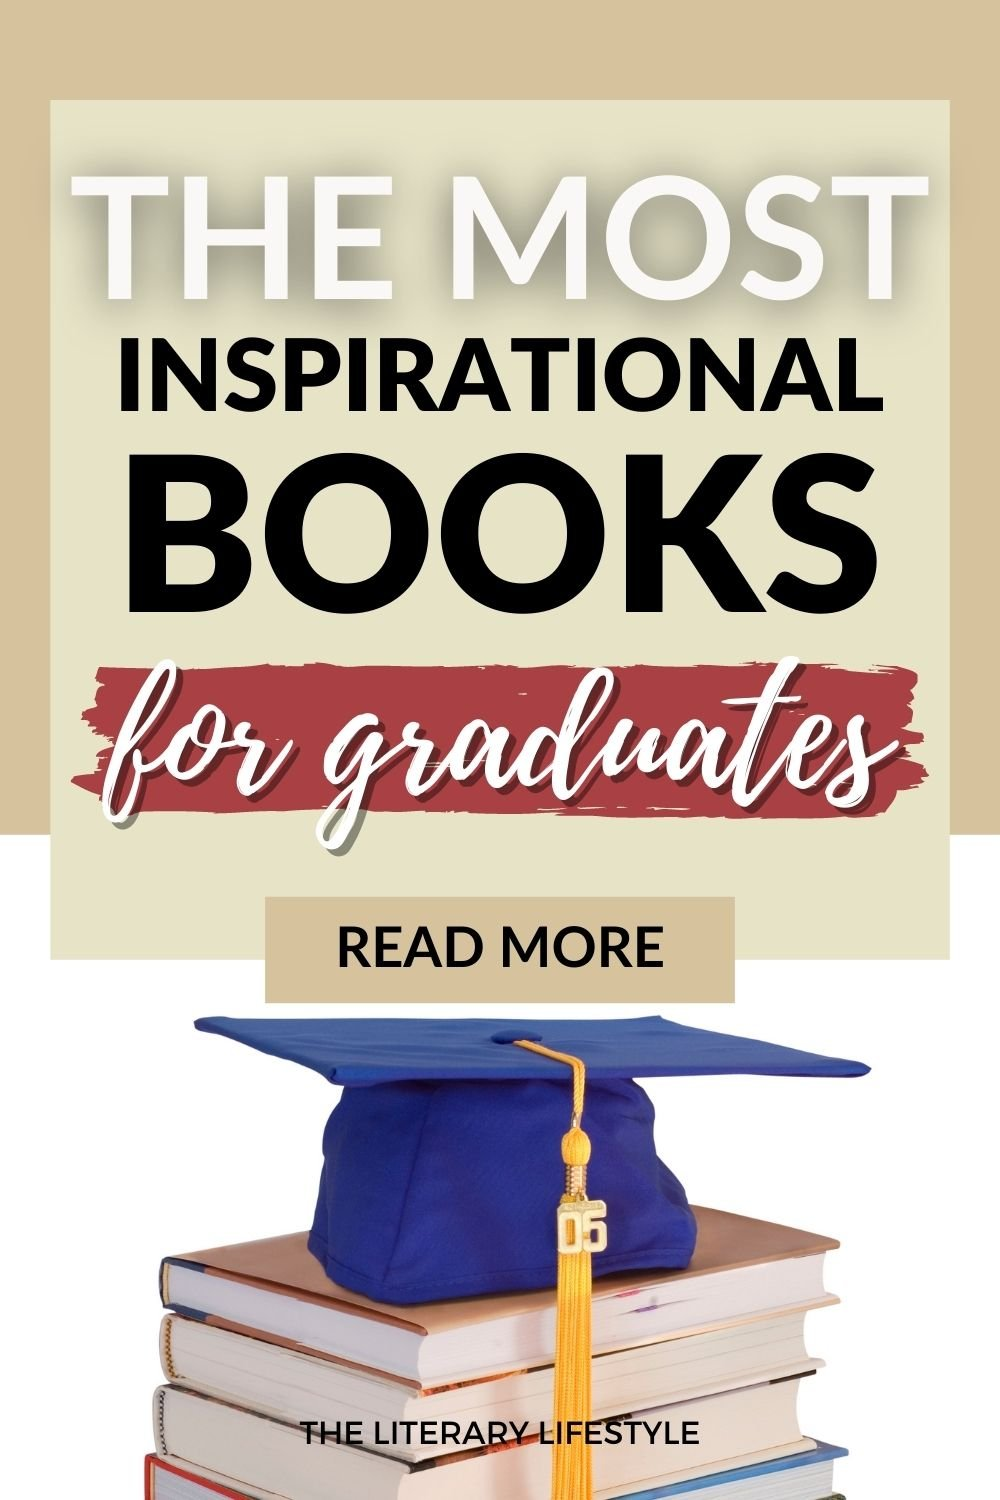 The Most Inspirational Books for Graduates